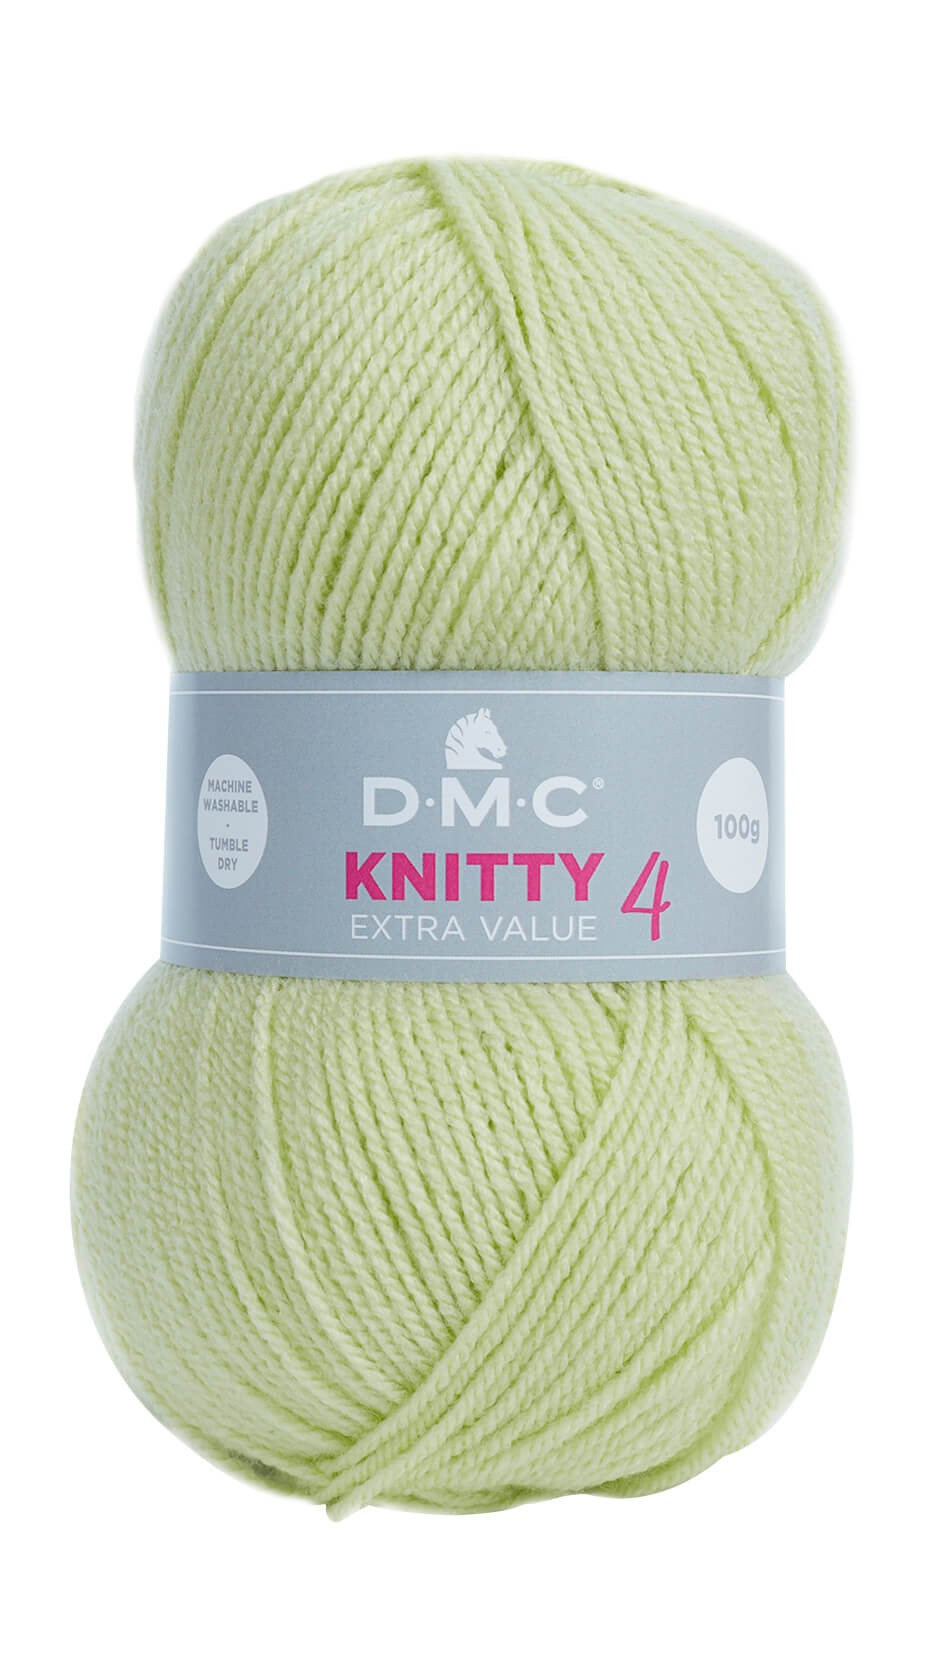 Lana acrílica DMC Knitty 4 Just Knitting 100 g 882